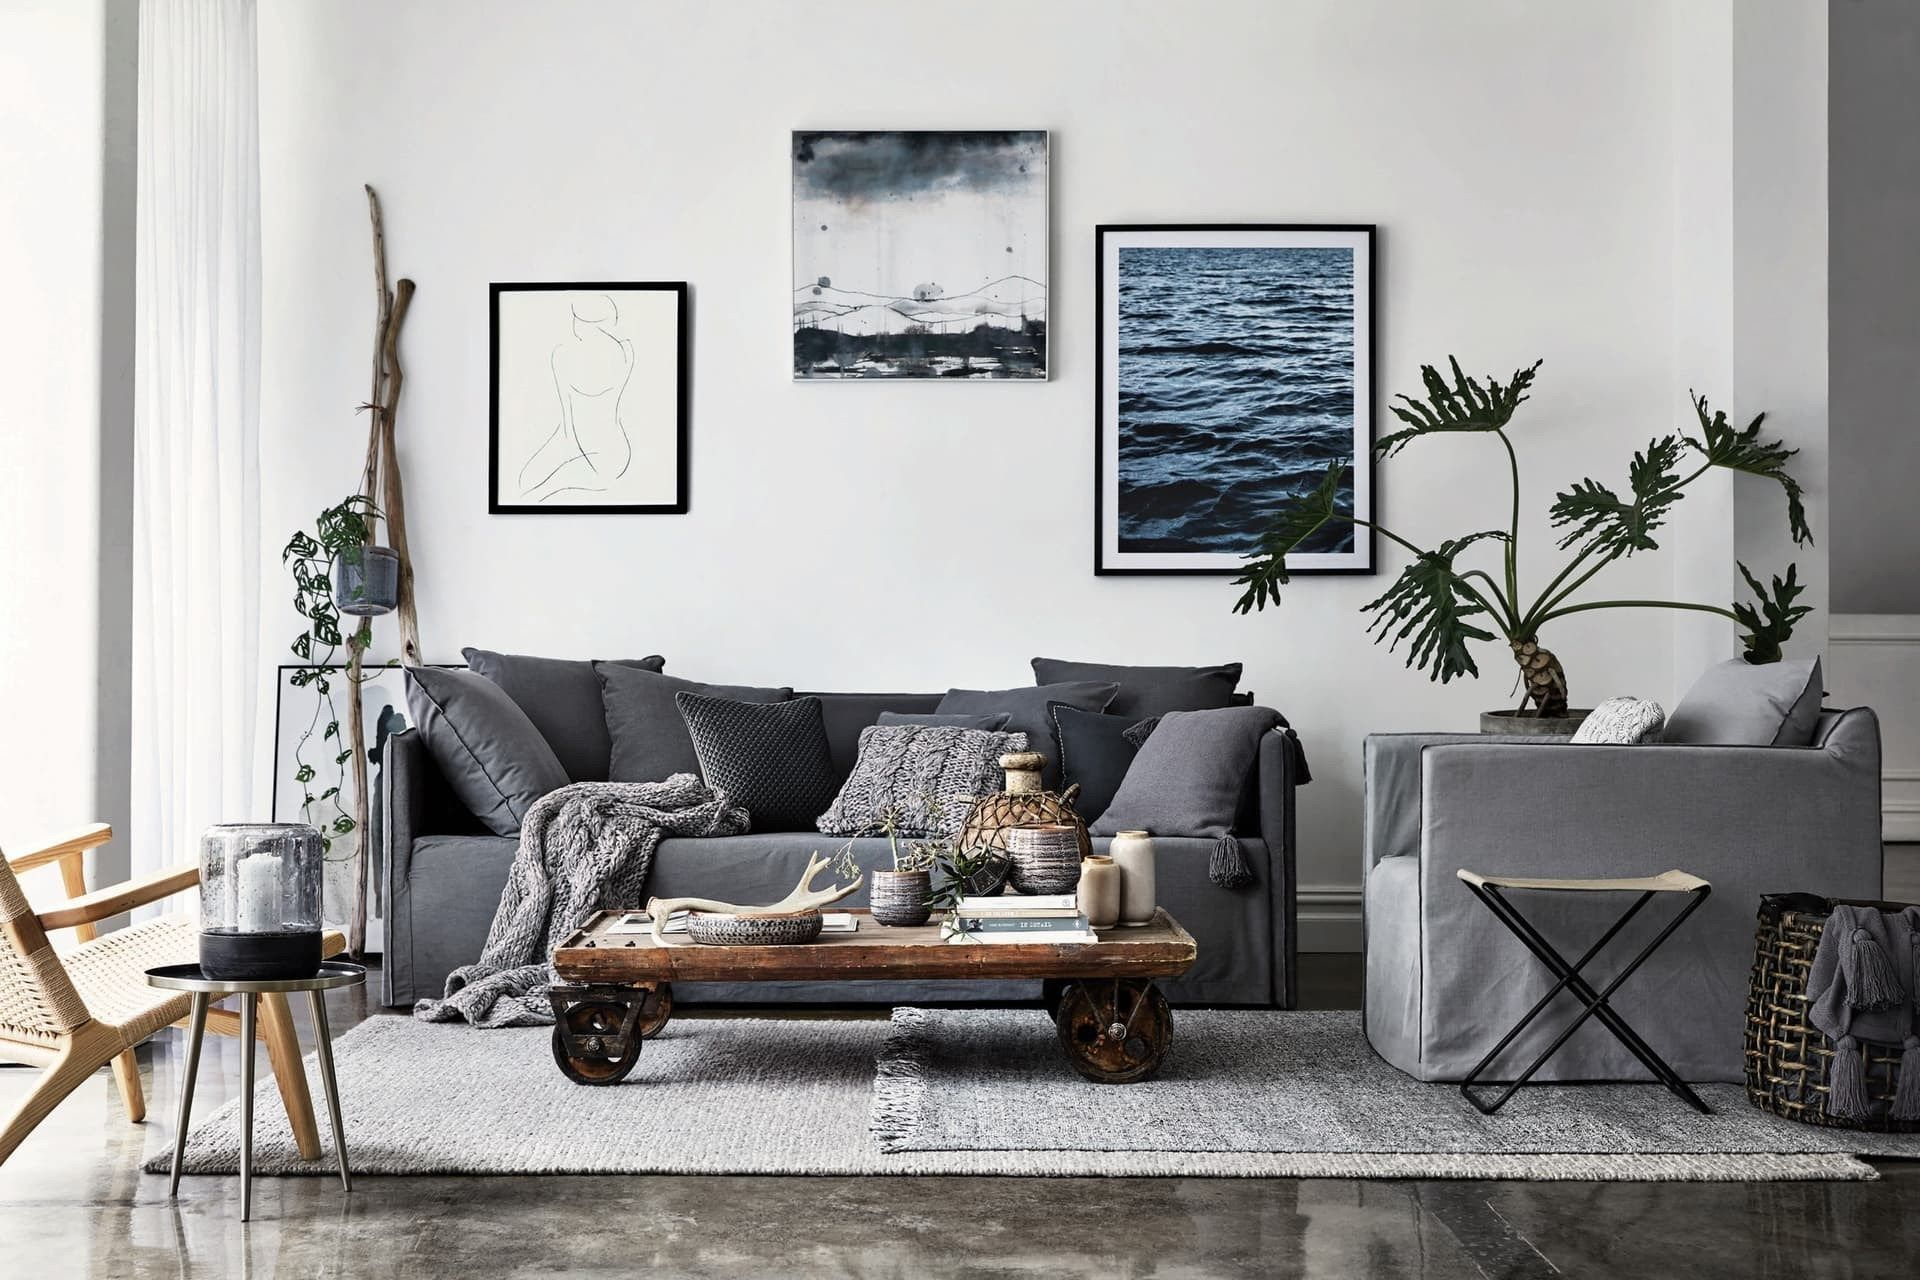 8 Ways To Design A Rustic Industrial Living Room The Urban Interior Modern Industrial Living Room Industrial Interior Design Living Room Interior Design Living Room Decor